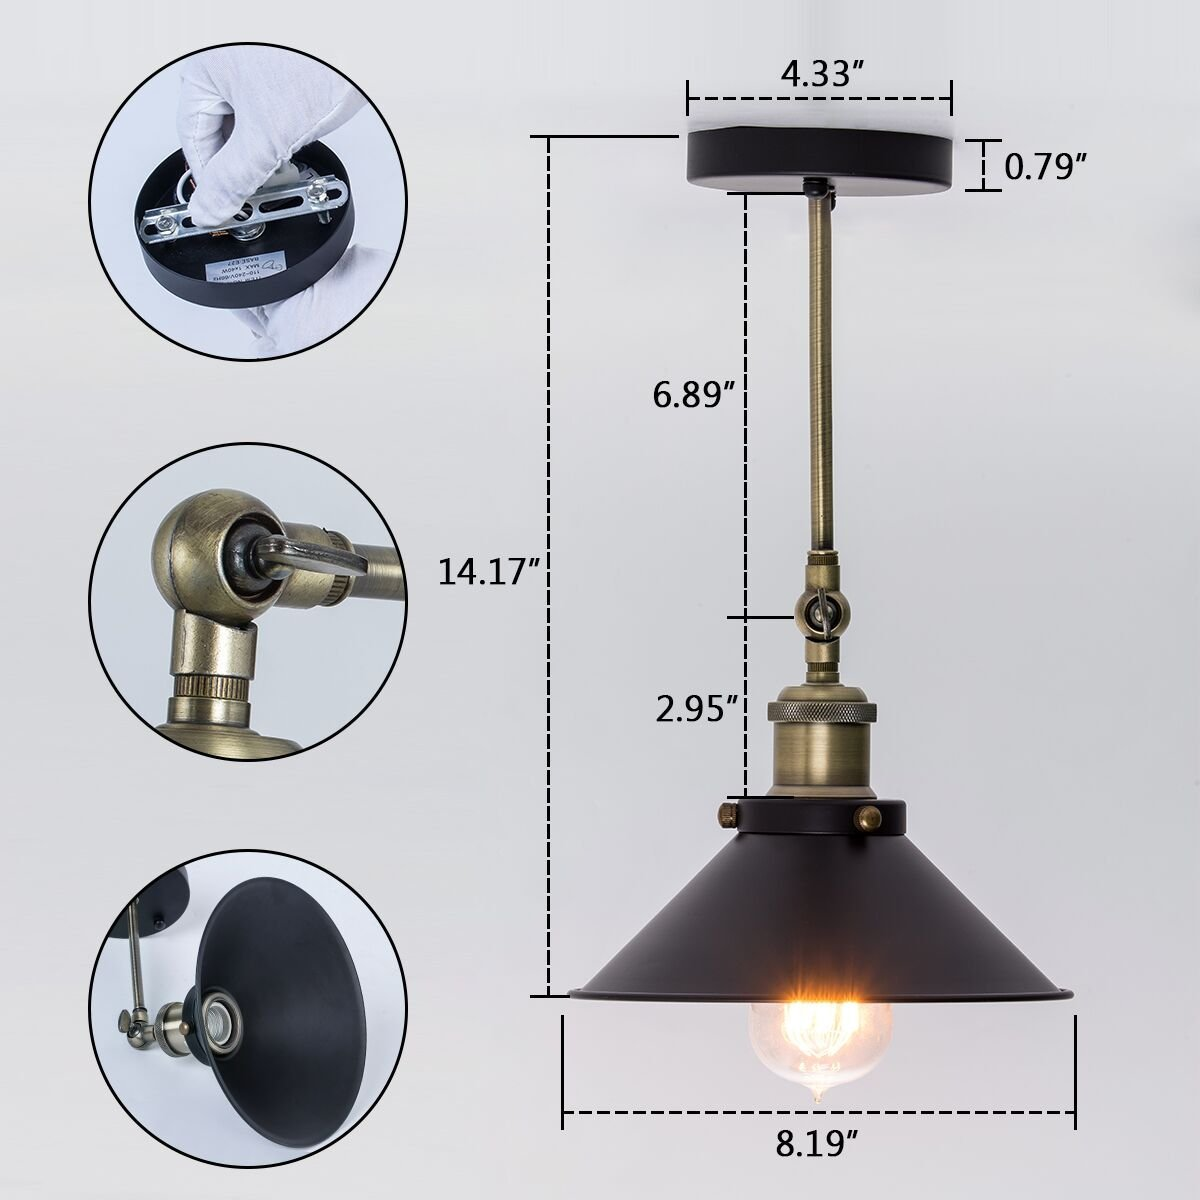 Forceful Retro Industrial Sconce Mini Adjustable Vintage Edison Simplicity Wall Lamp/ceiling Light Loft Style Antique Lampshade Ambilight Volume Large Lights & Lighting